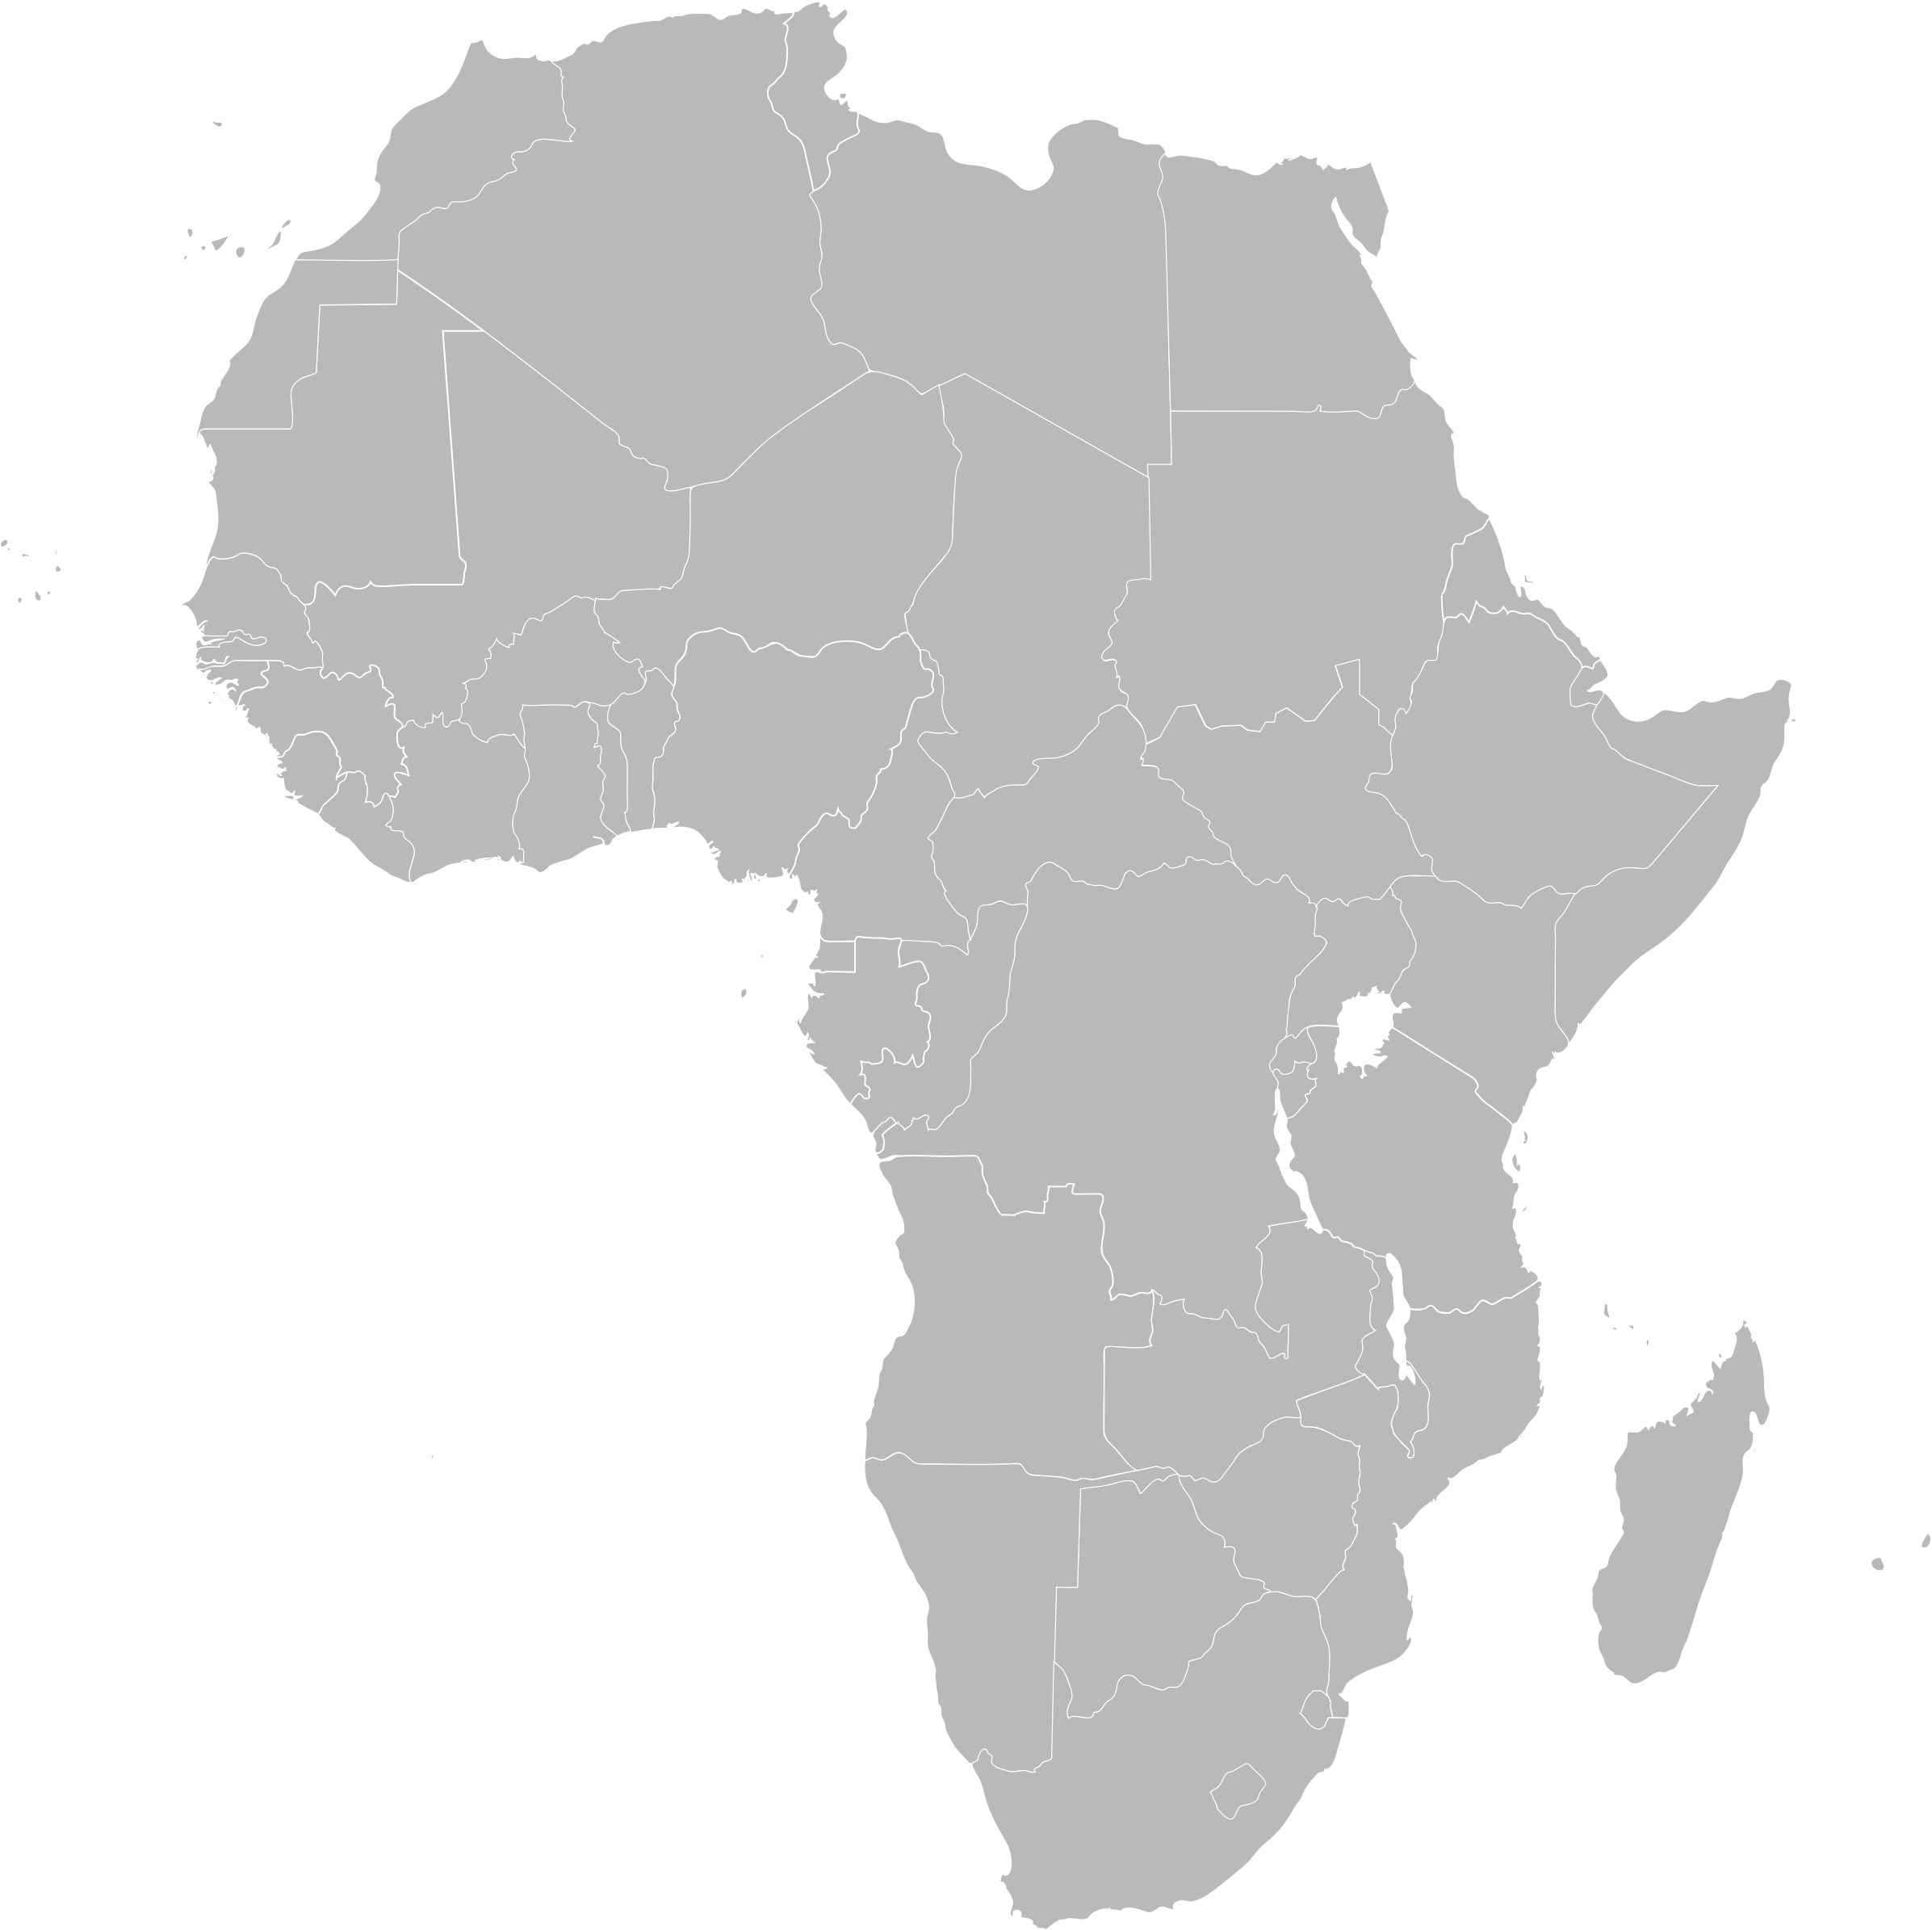 Clipart - Outline map Africa